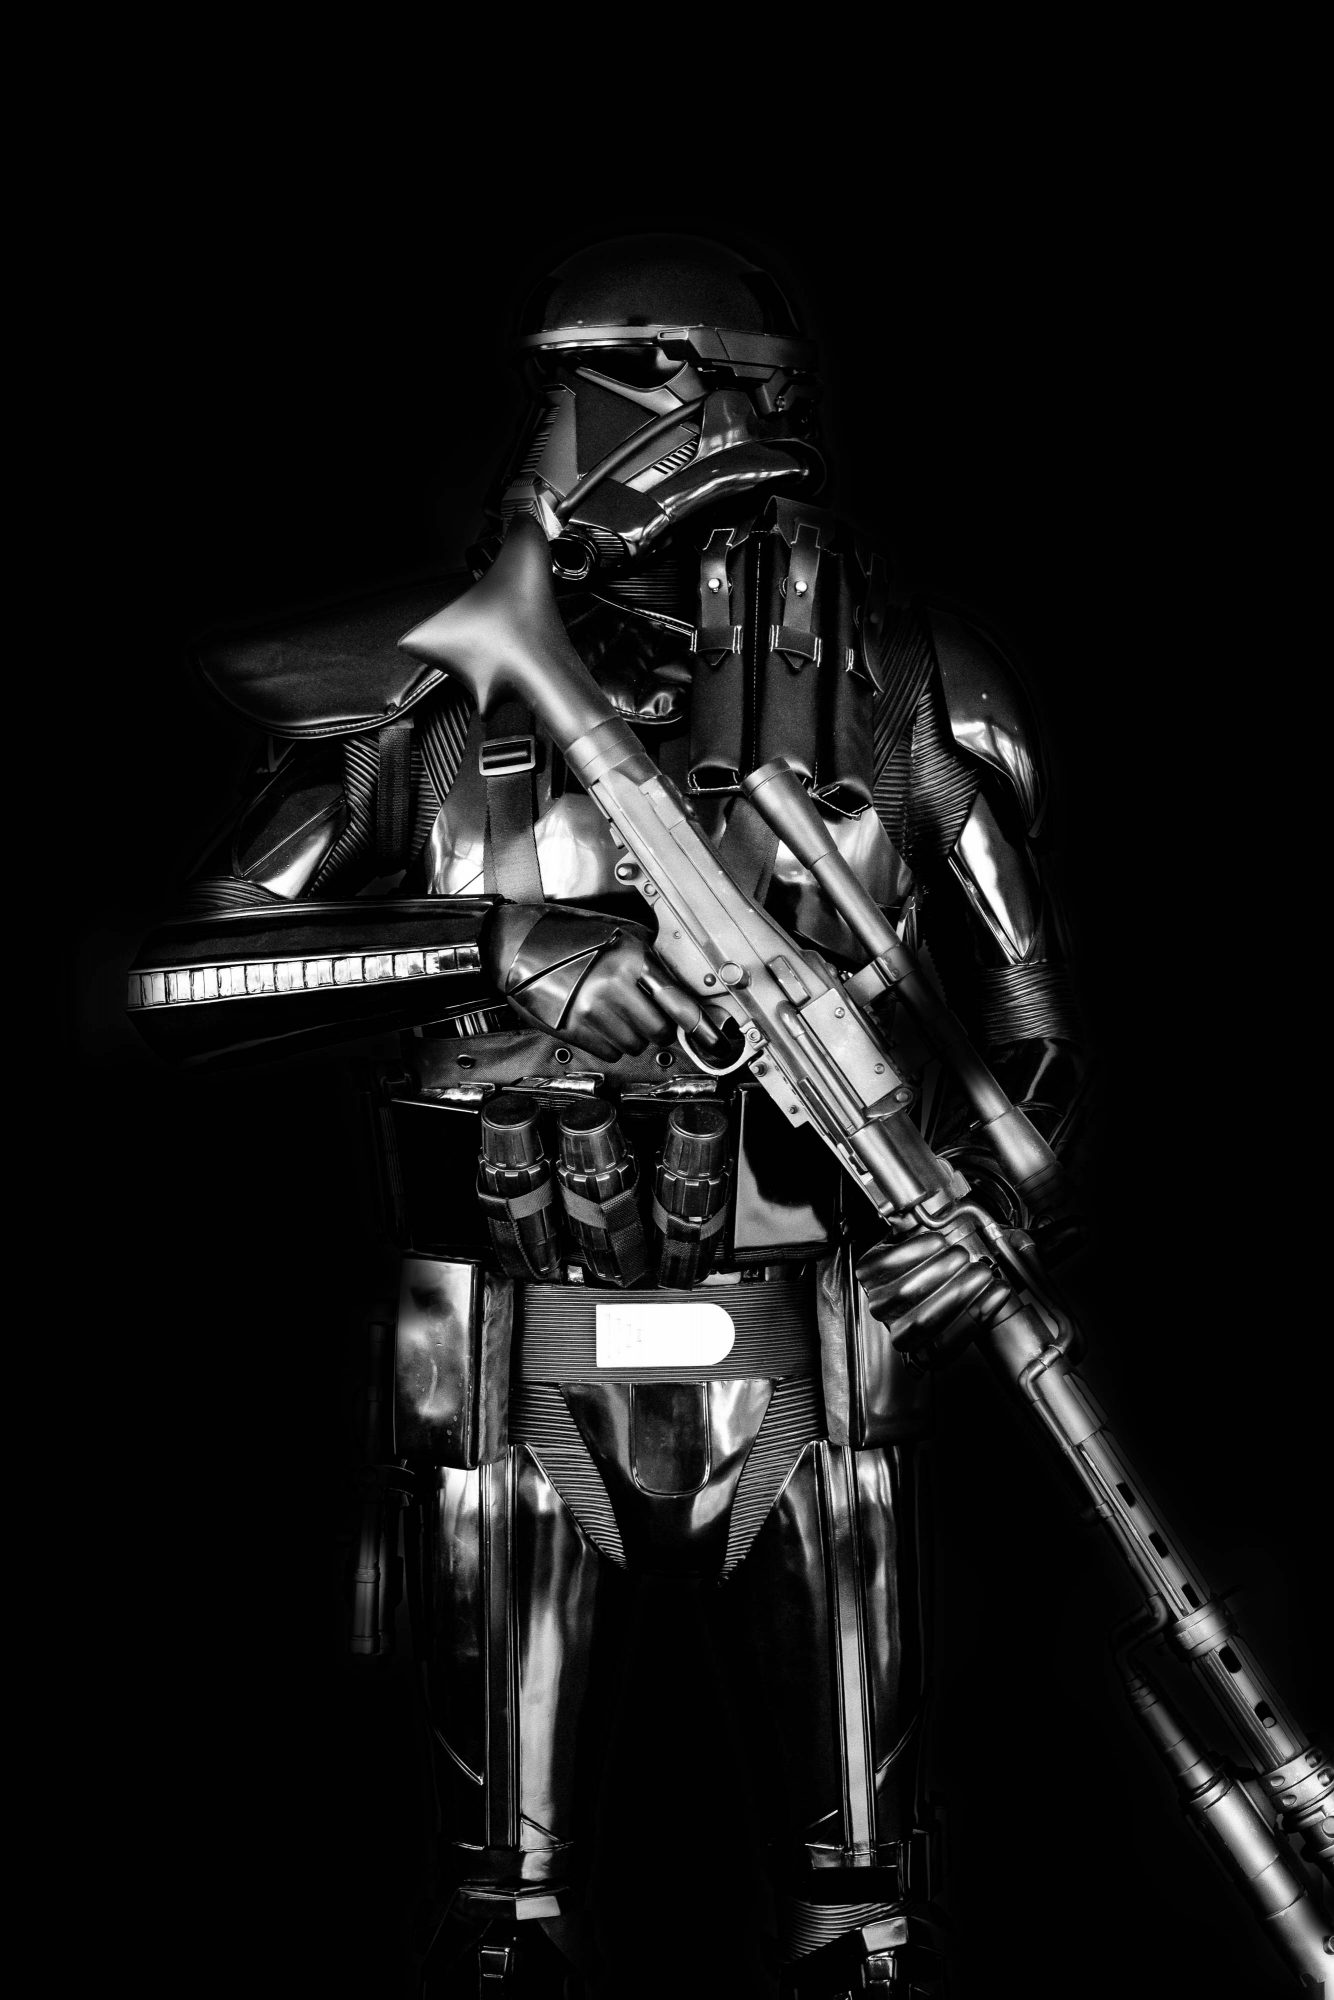 Leica M10 and Star Wars - Deathtrooper - photo by Jay Goodrich